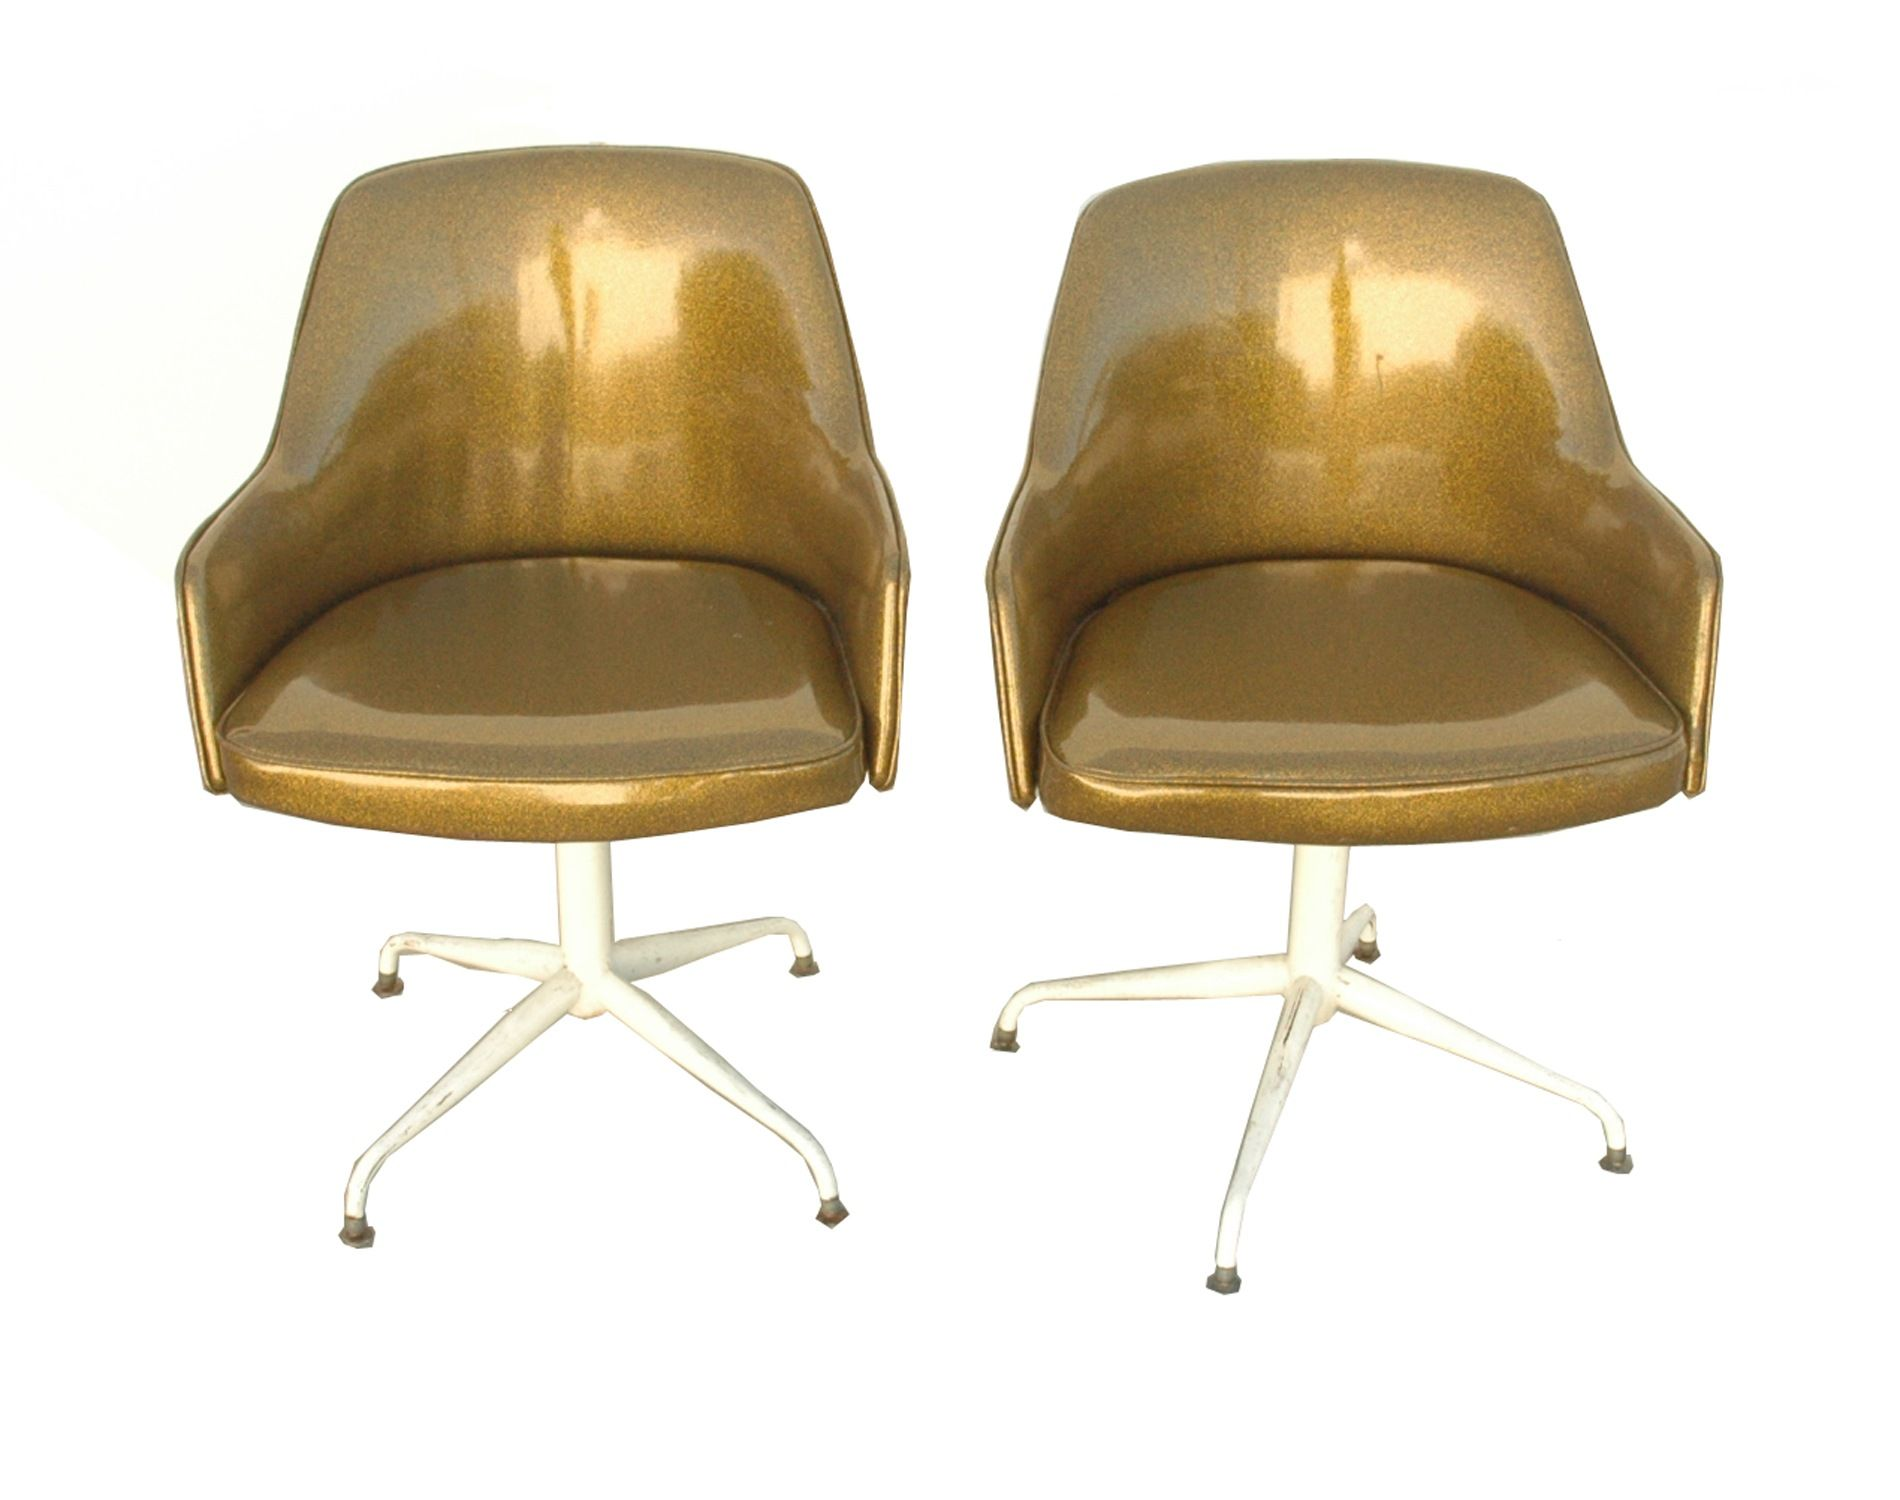 Mid Century Modern Gold Padded Swivel Chairs set of 2